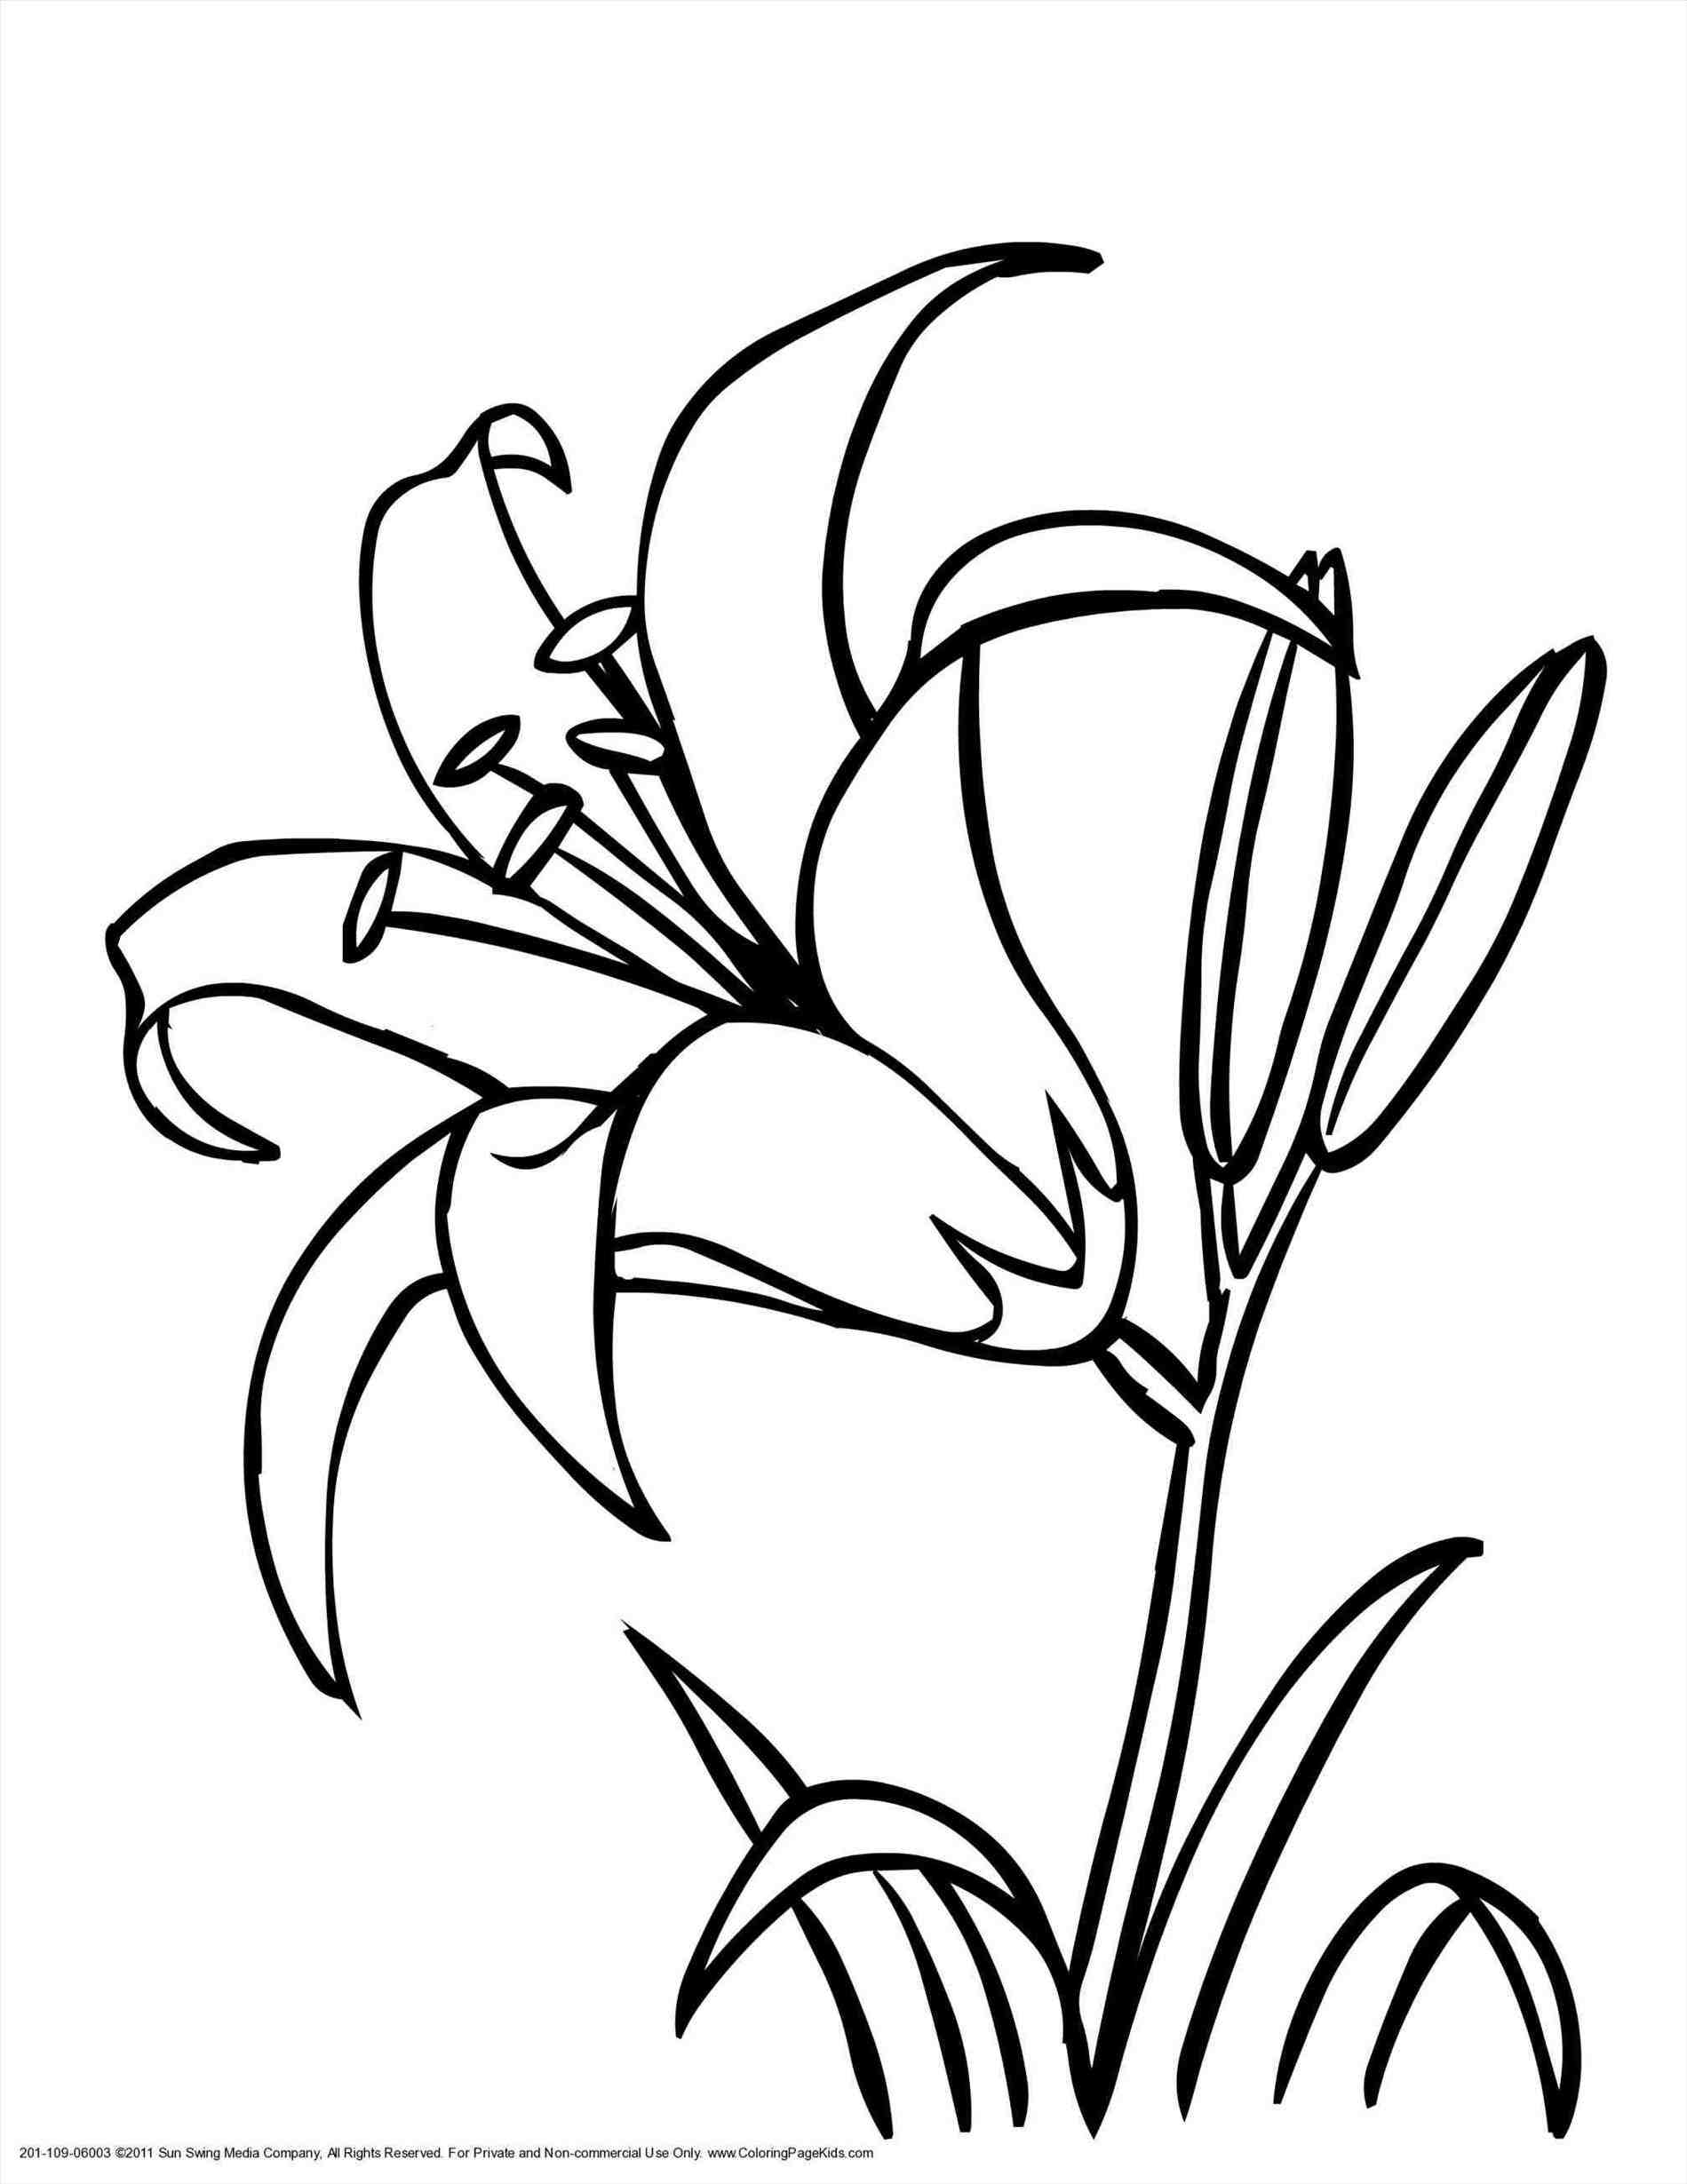 Lily Drawing Outline At Getdrawings Free For Personal Use Lily